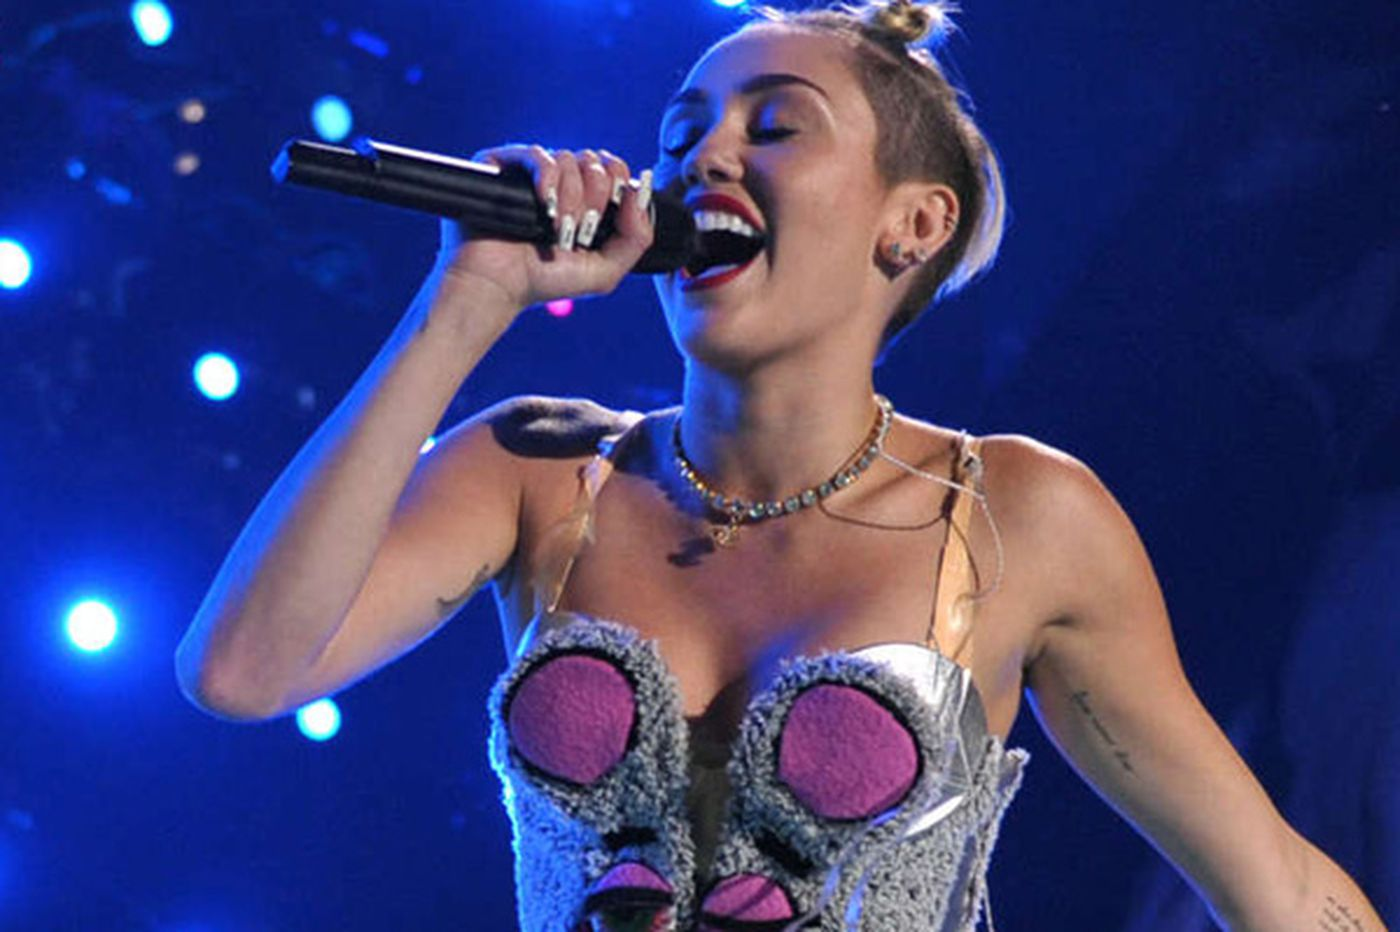 A look at pop-star ladies coming to Philly